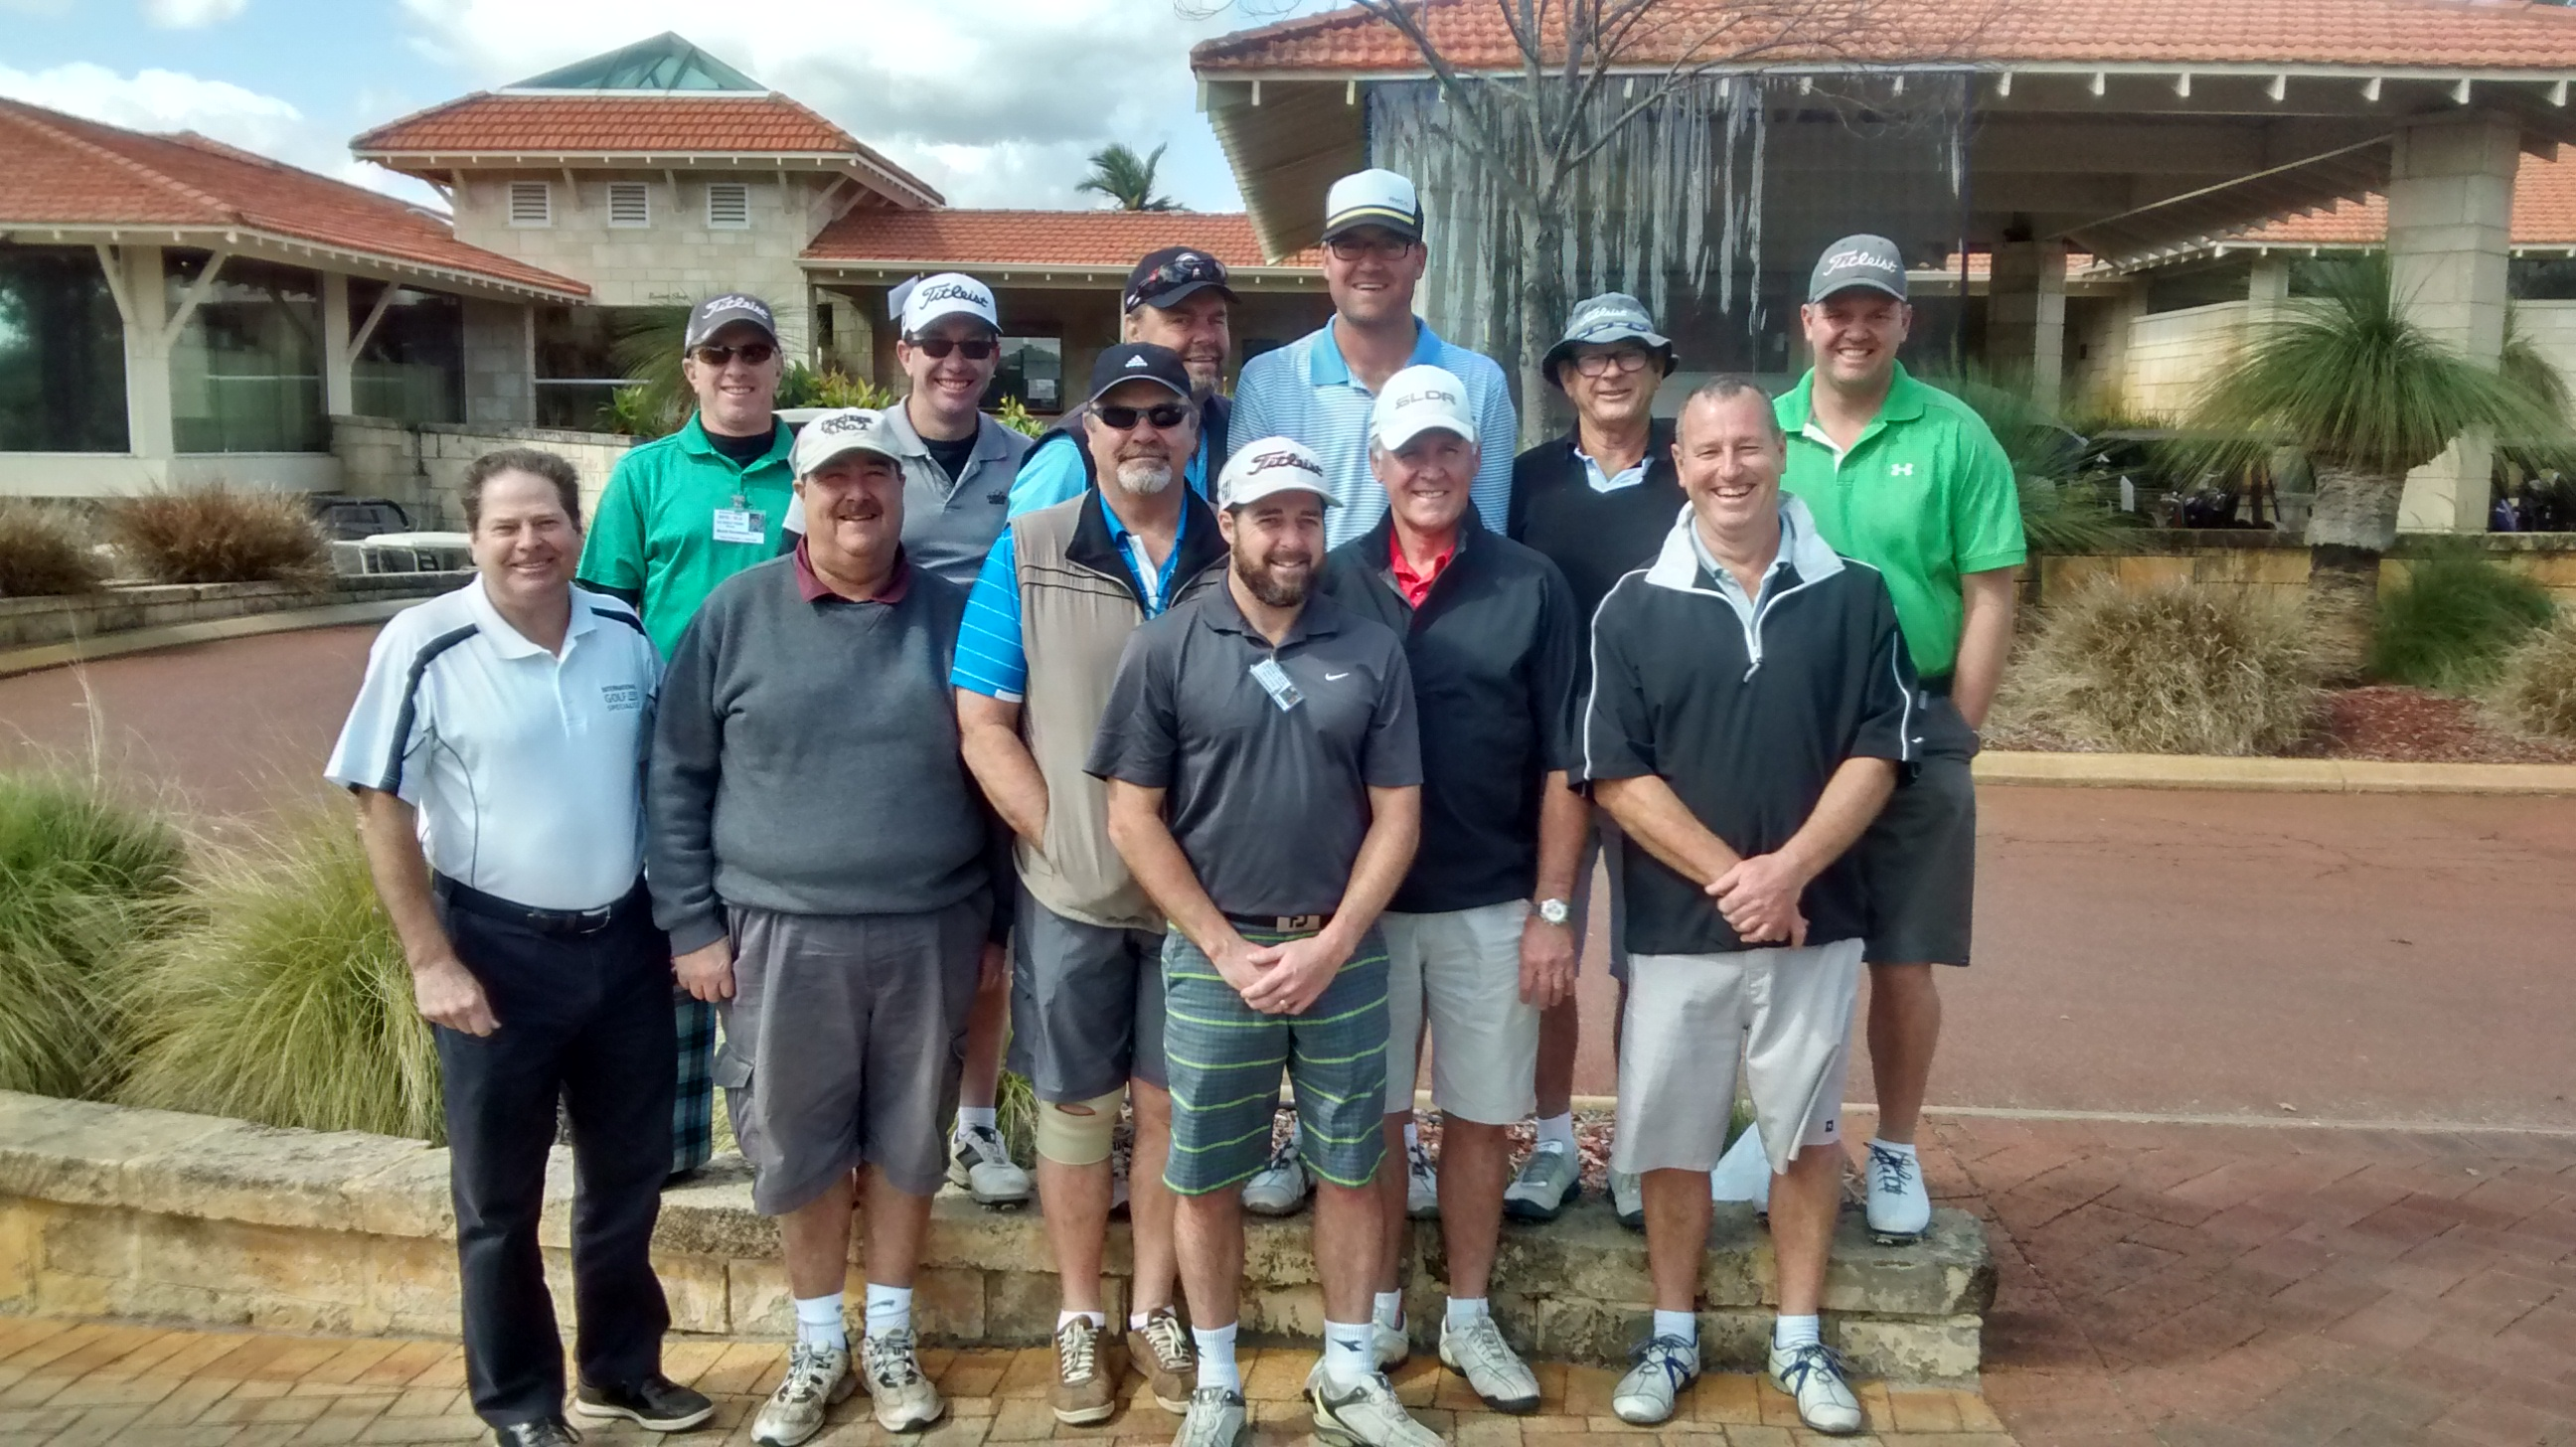 Our latest Perth Golf Tour, the Wiliamson Group!